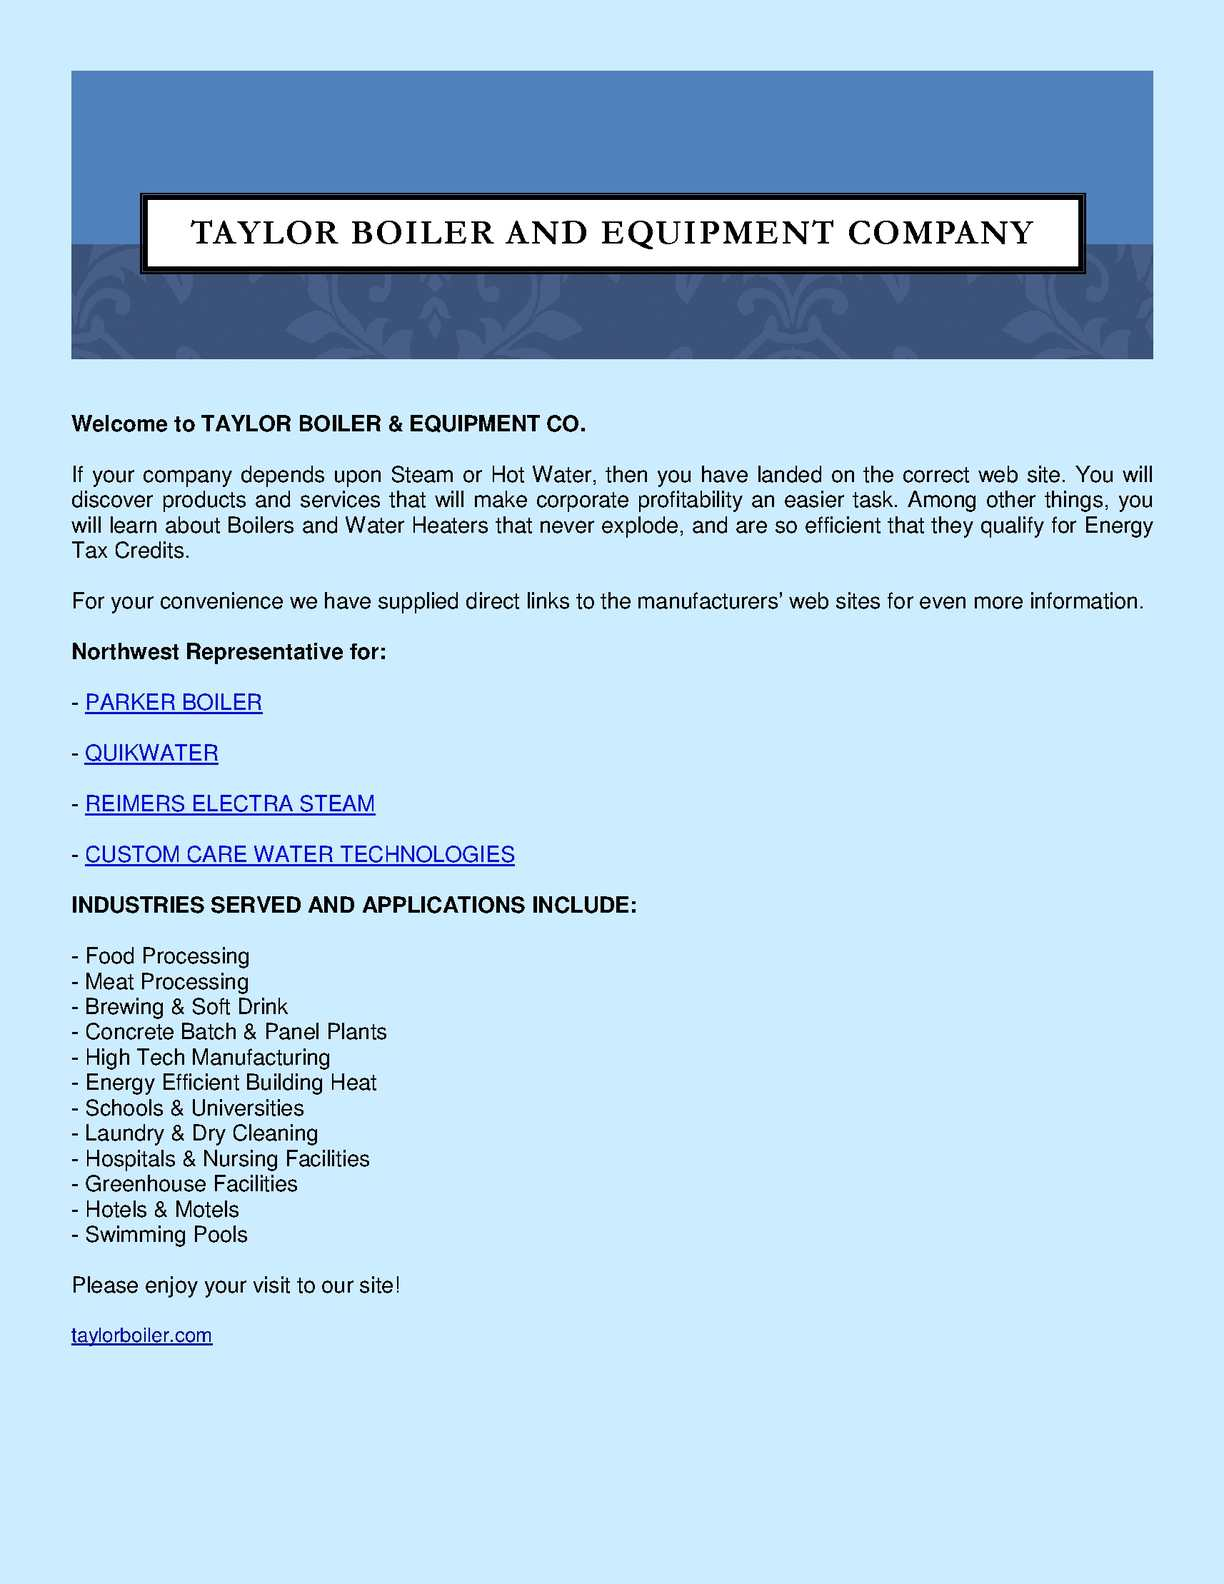 Calaméo - Taylor Boiler and Equipment Company